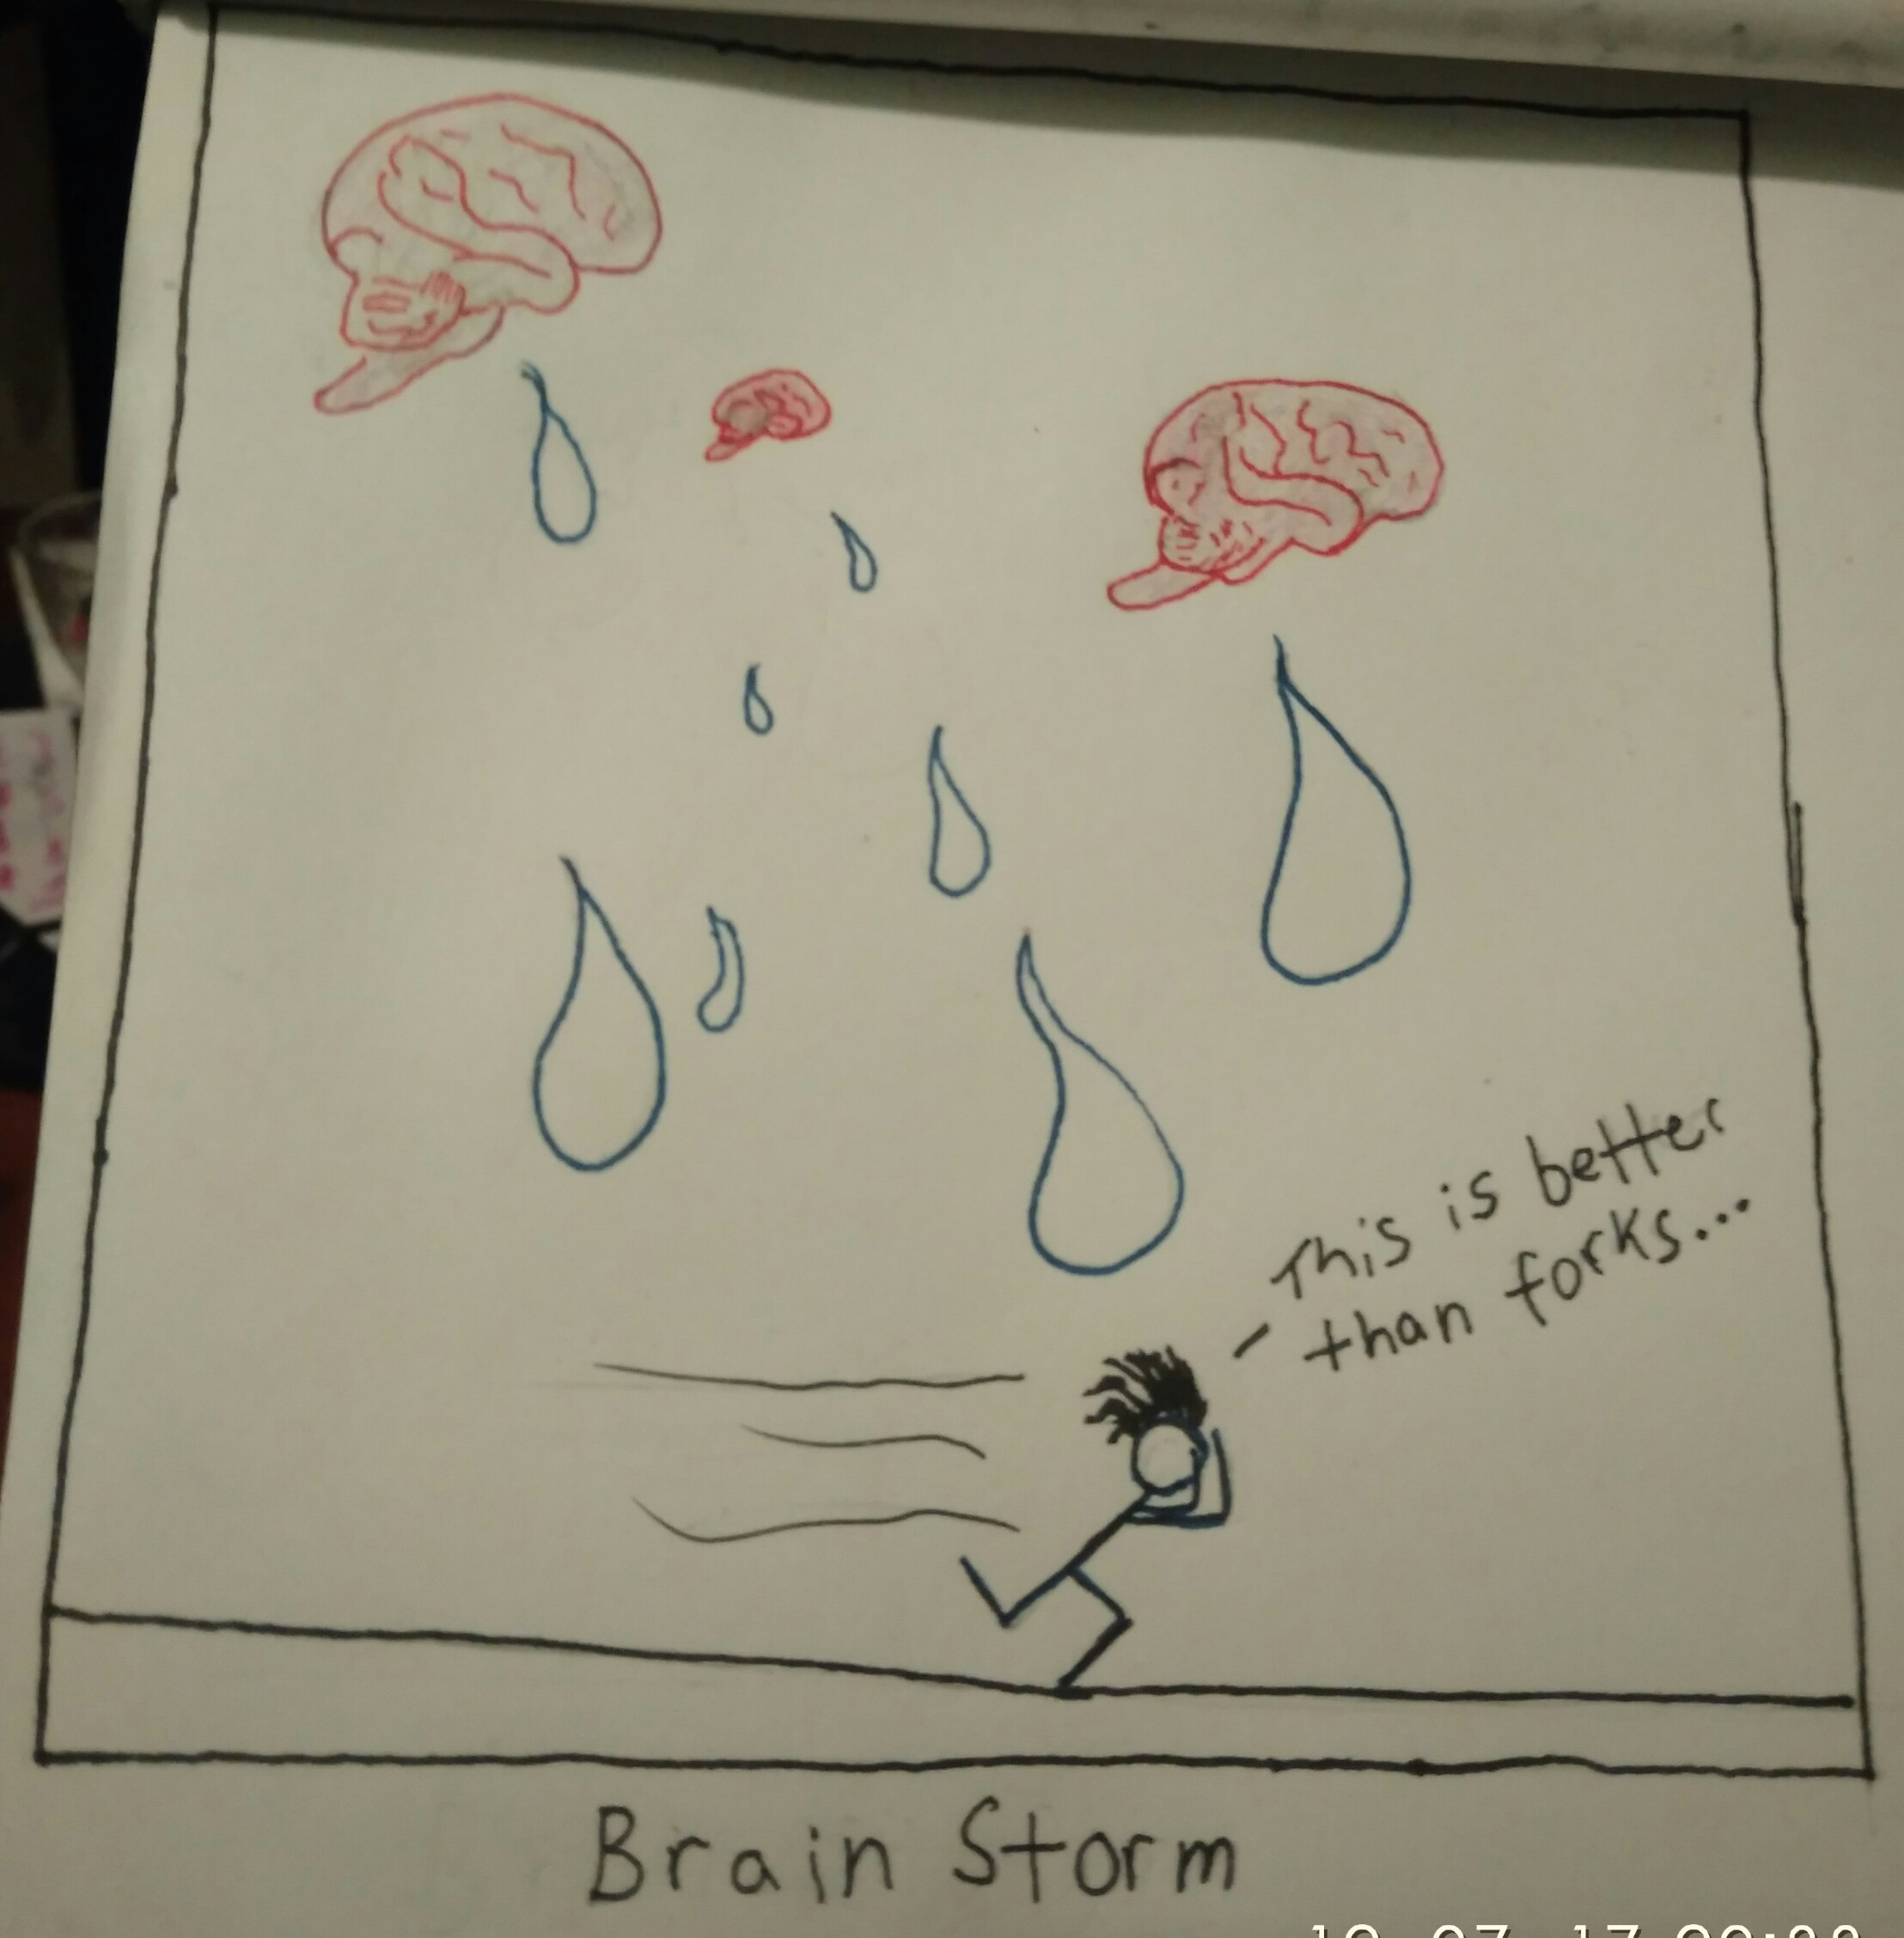 Brainstorm (comic)